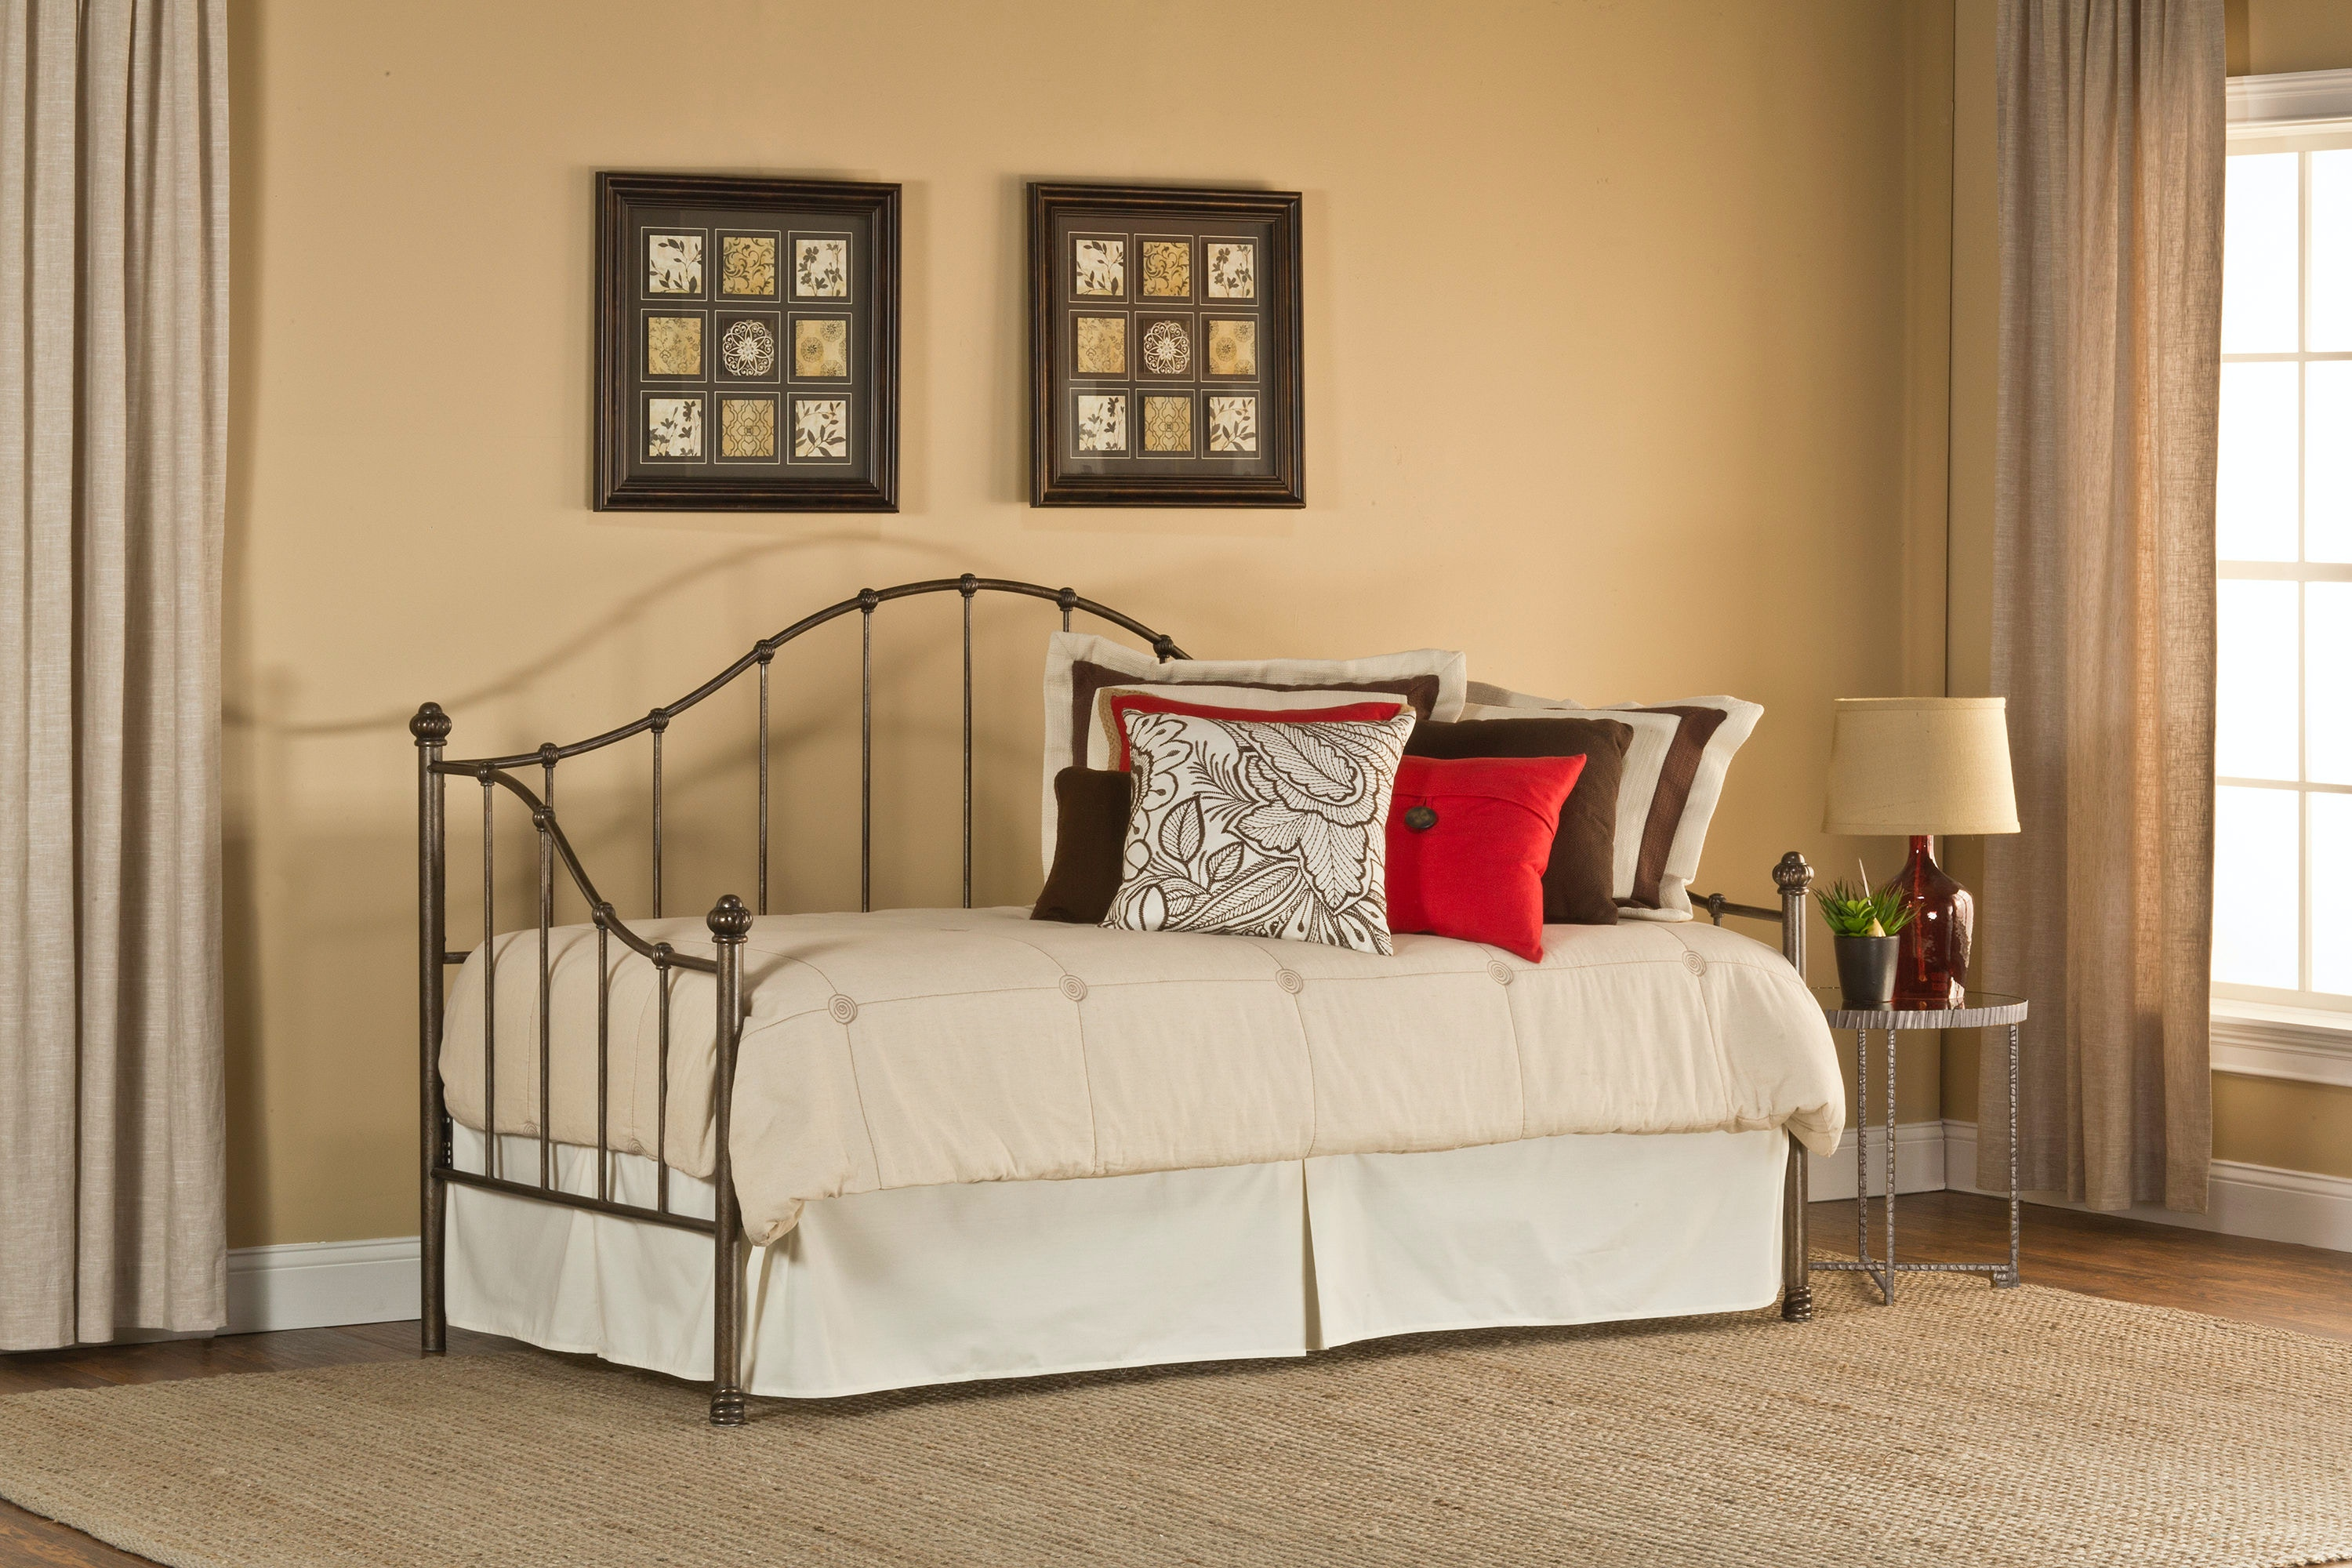 Superieur Hillsdale Furniture Bedroom Amy Daybed 1271 010 At Furniture Kingdom